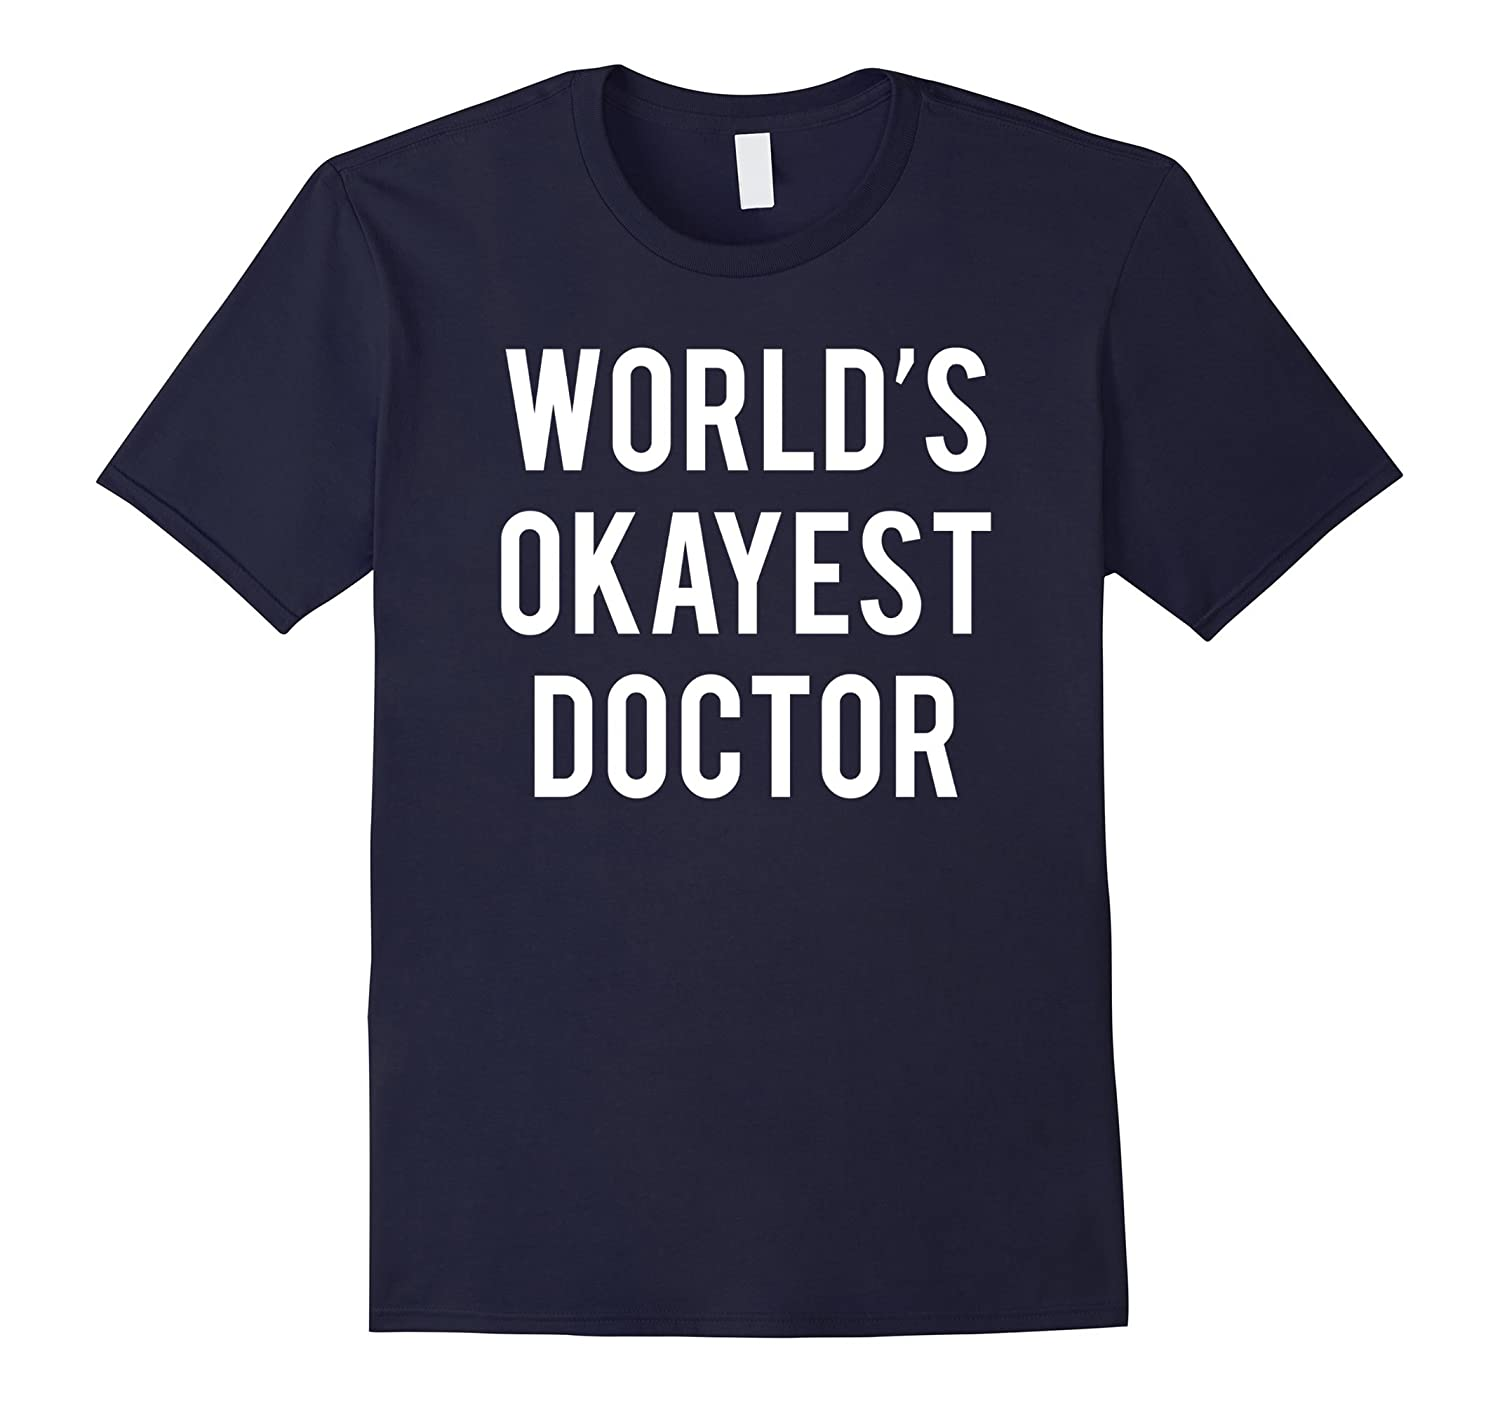 World's Okayest Doctor T-Shirt Funny Medical Humor-FL